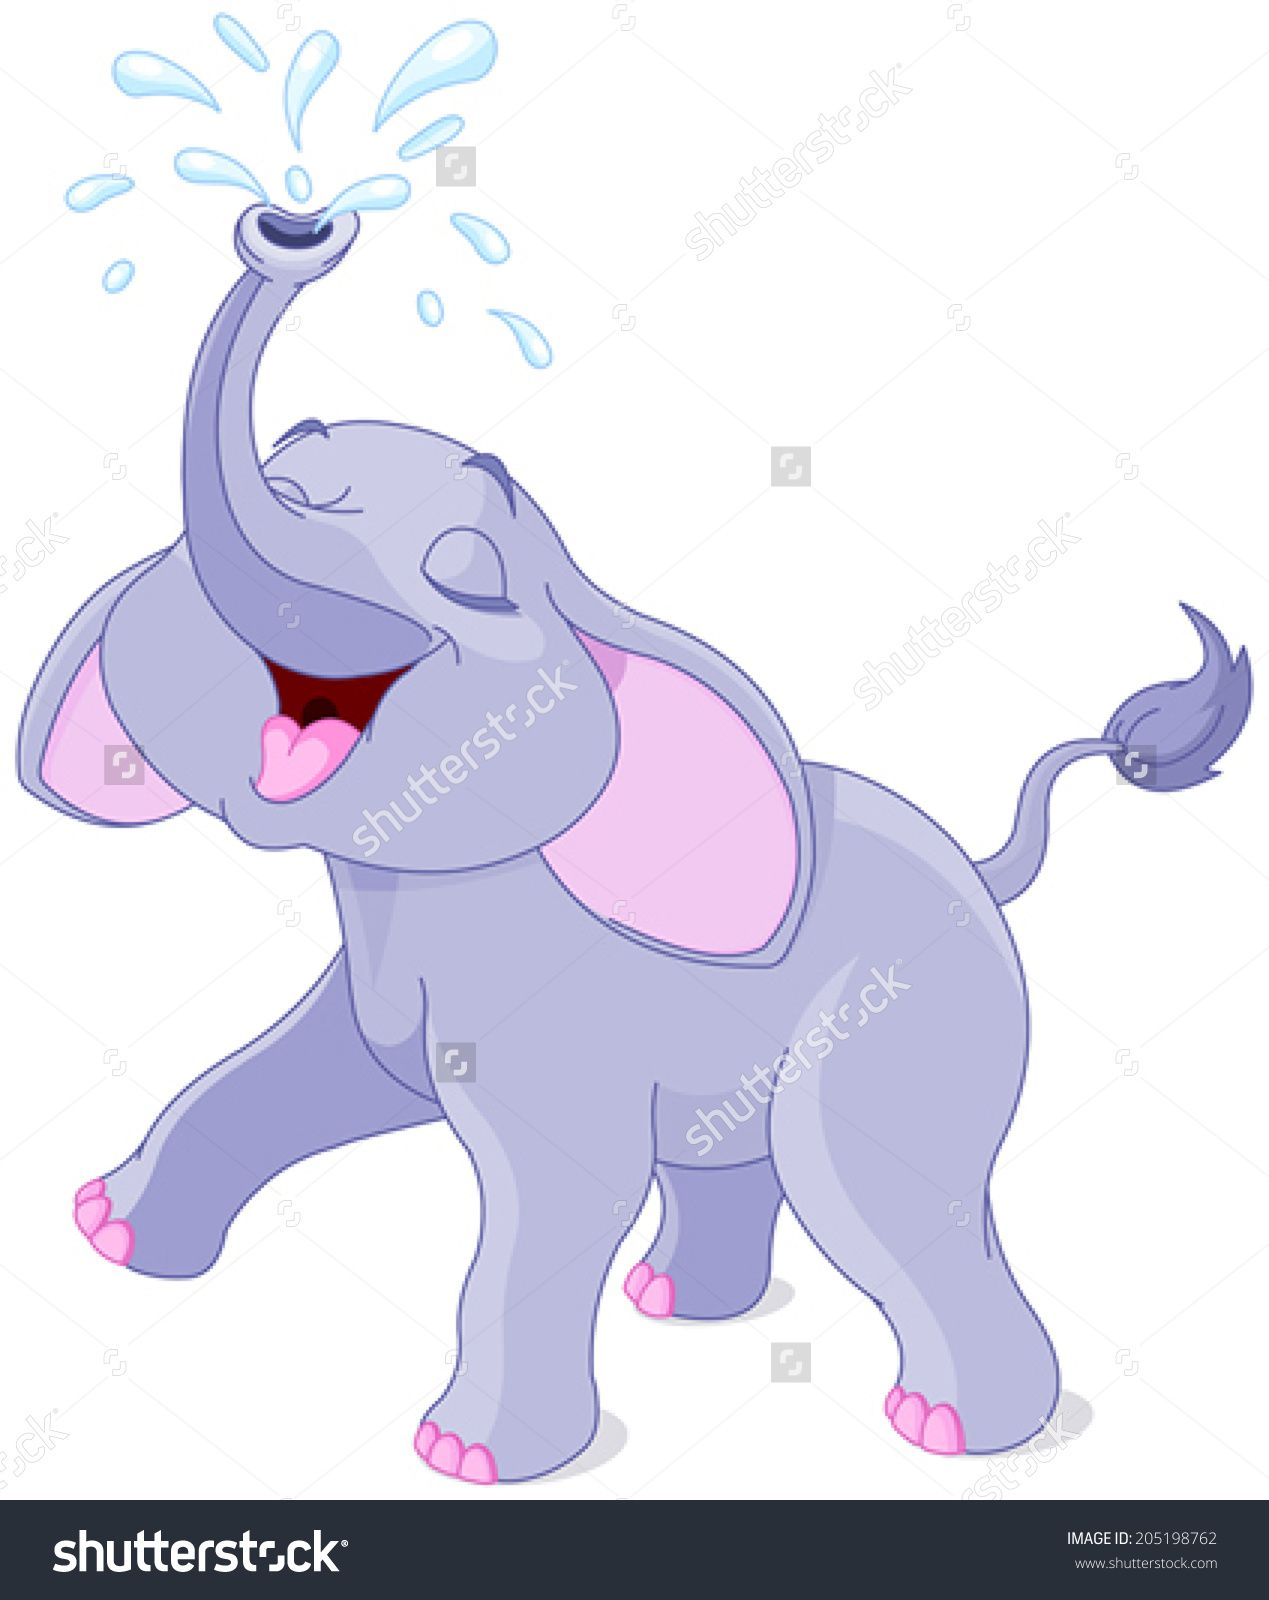 Elephants clipart water. Illustration of playing baby